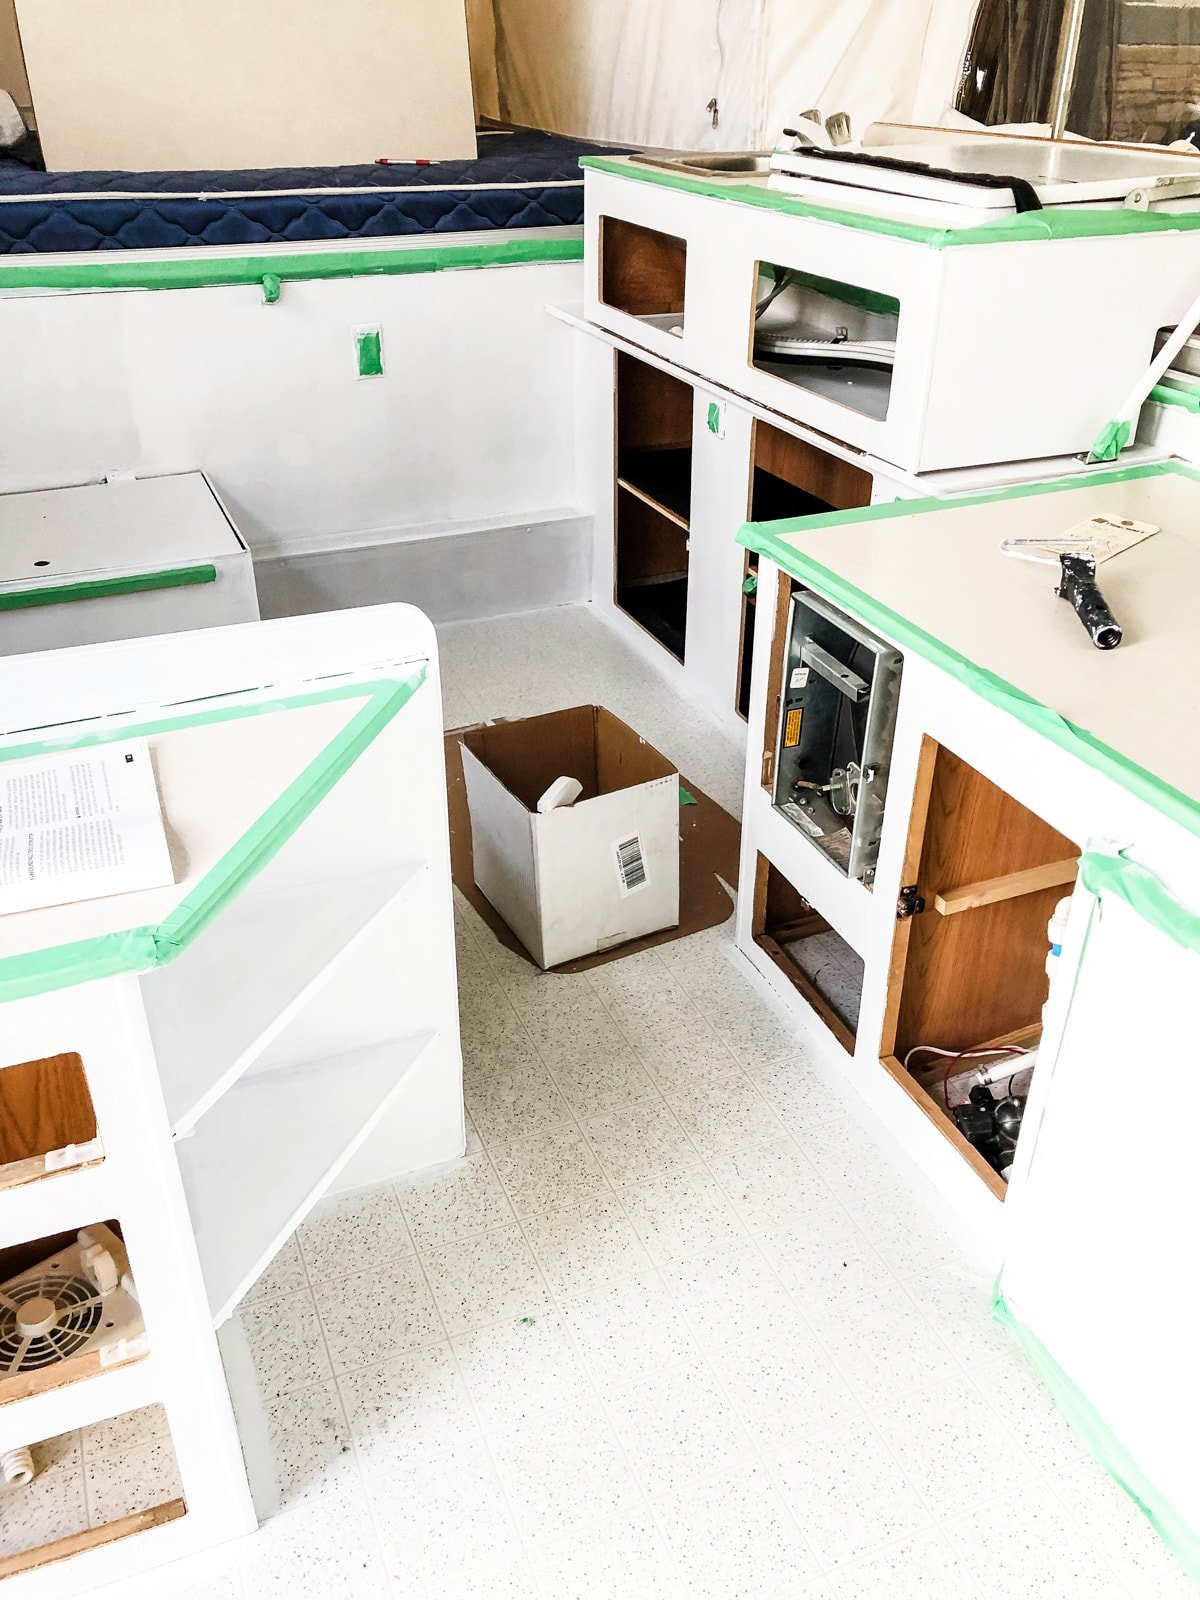 Our Pop-Up Camper Makeover: Painting Camper Cabinets